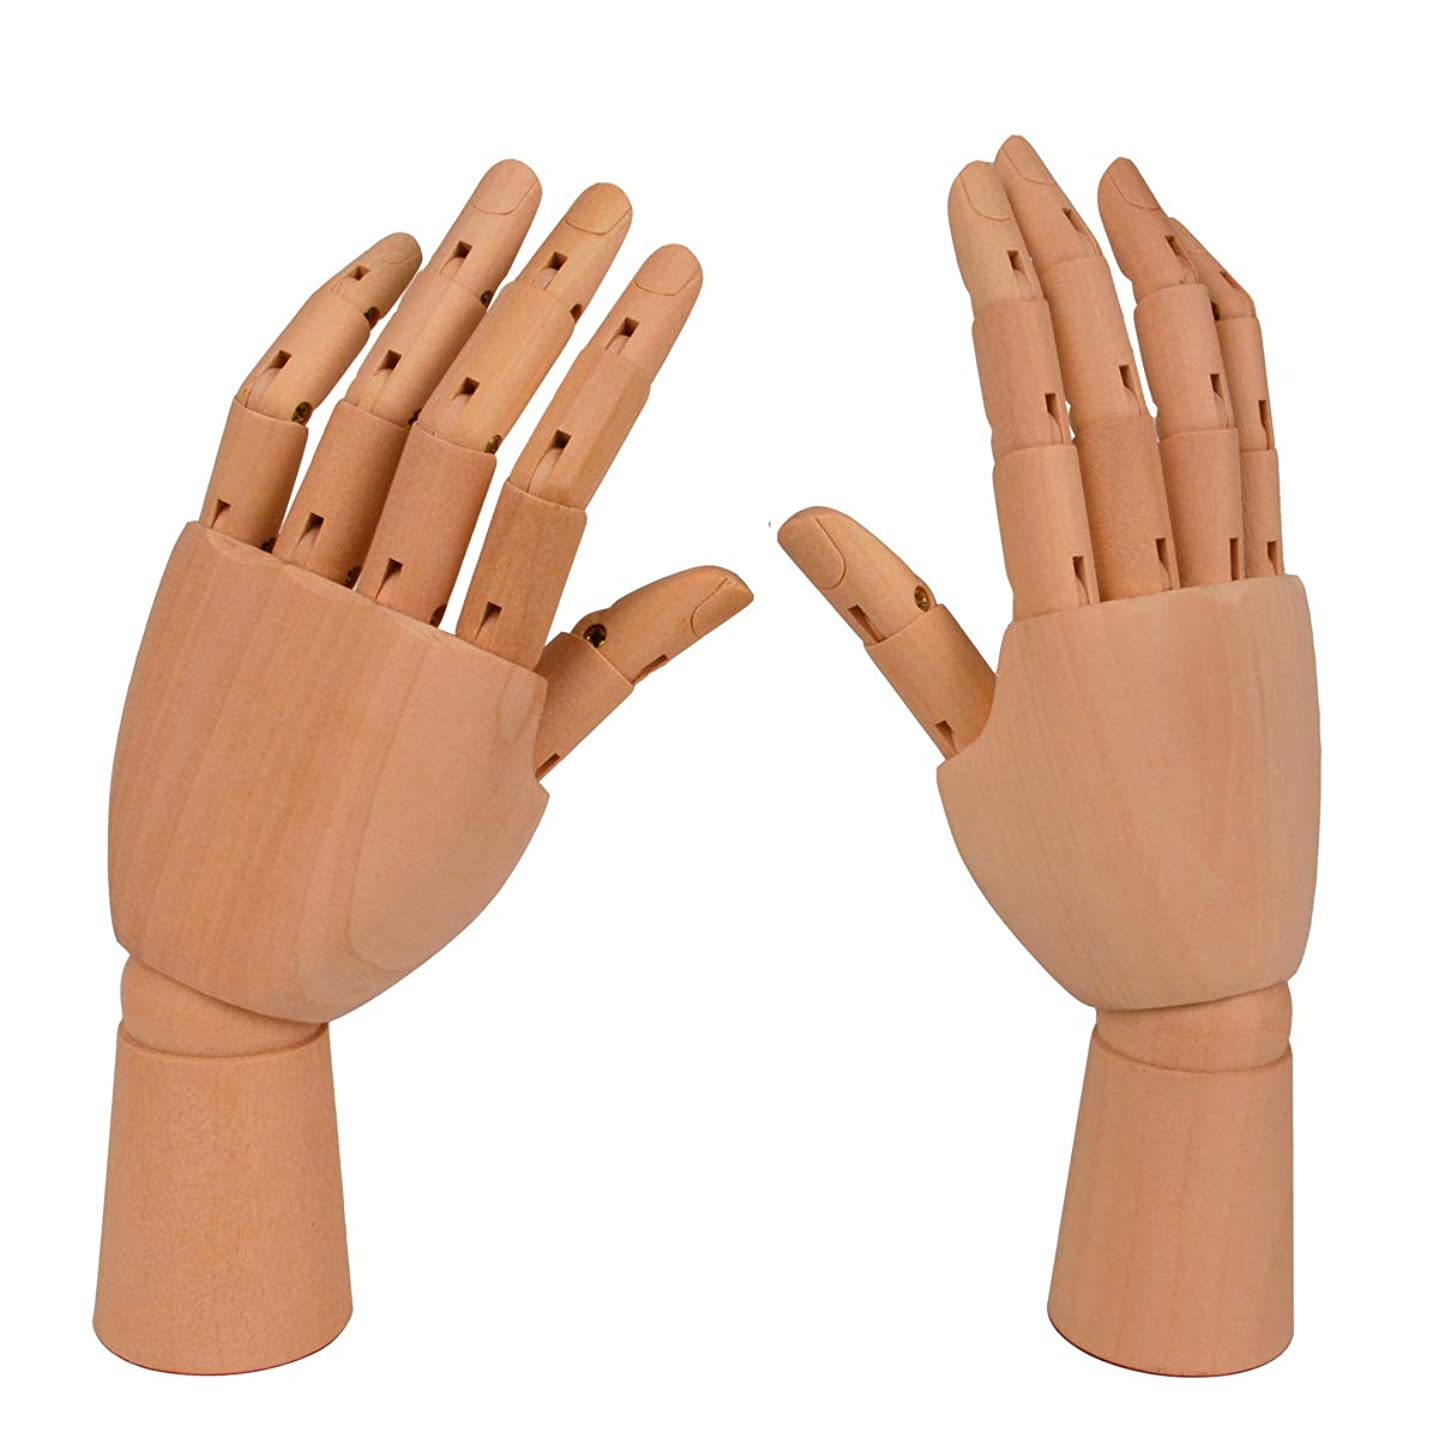 Bleiou Wooden Art Mannequin Hand 7 Inch Art Sectioned Left and Right Hand Model for Drawing, Sketch, Painting